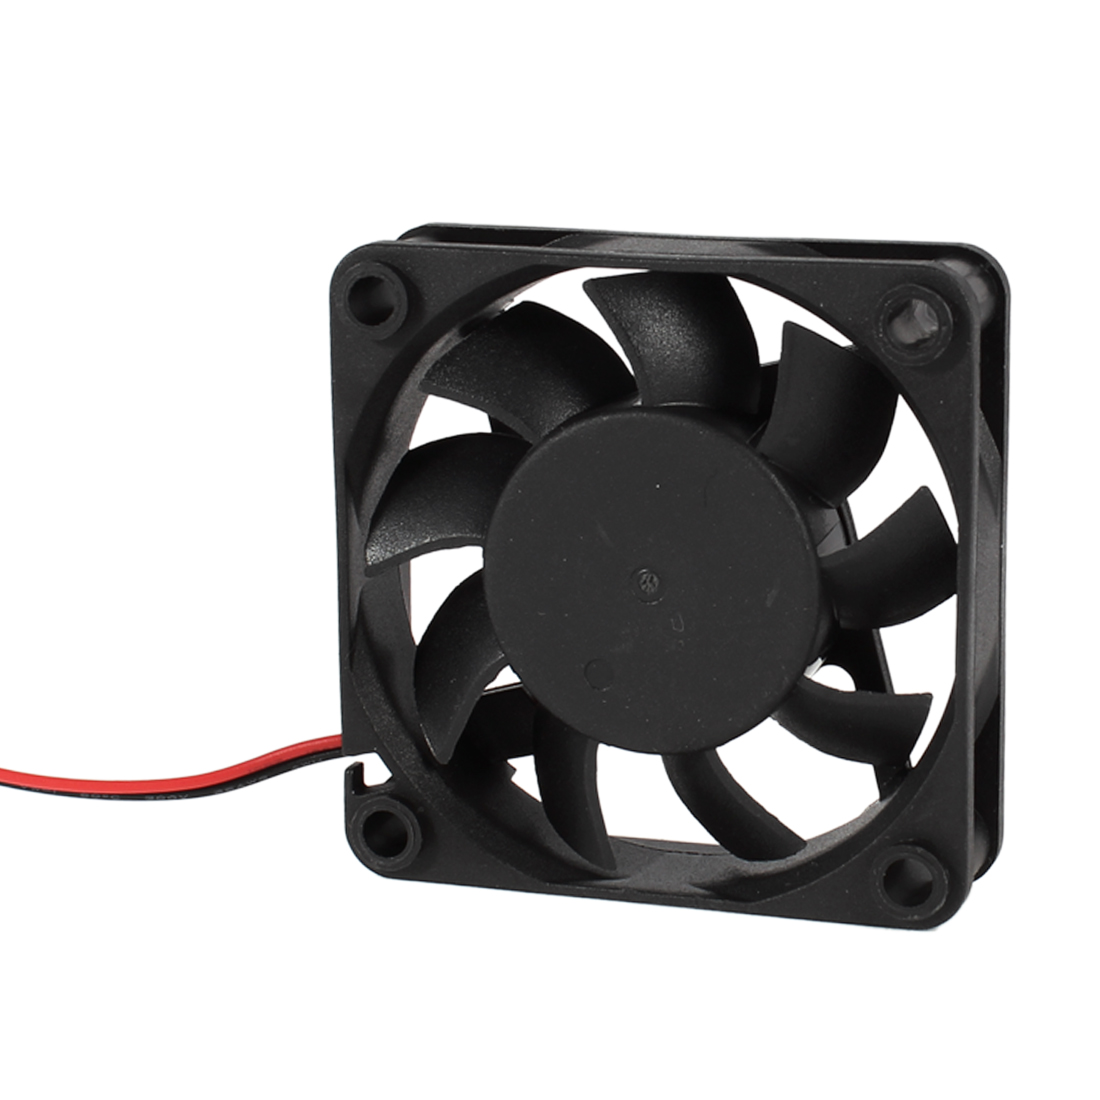 DC 12V 0.18A 60mm Cooling Fan for Computer Case CPU Cooler Radiator